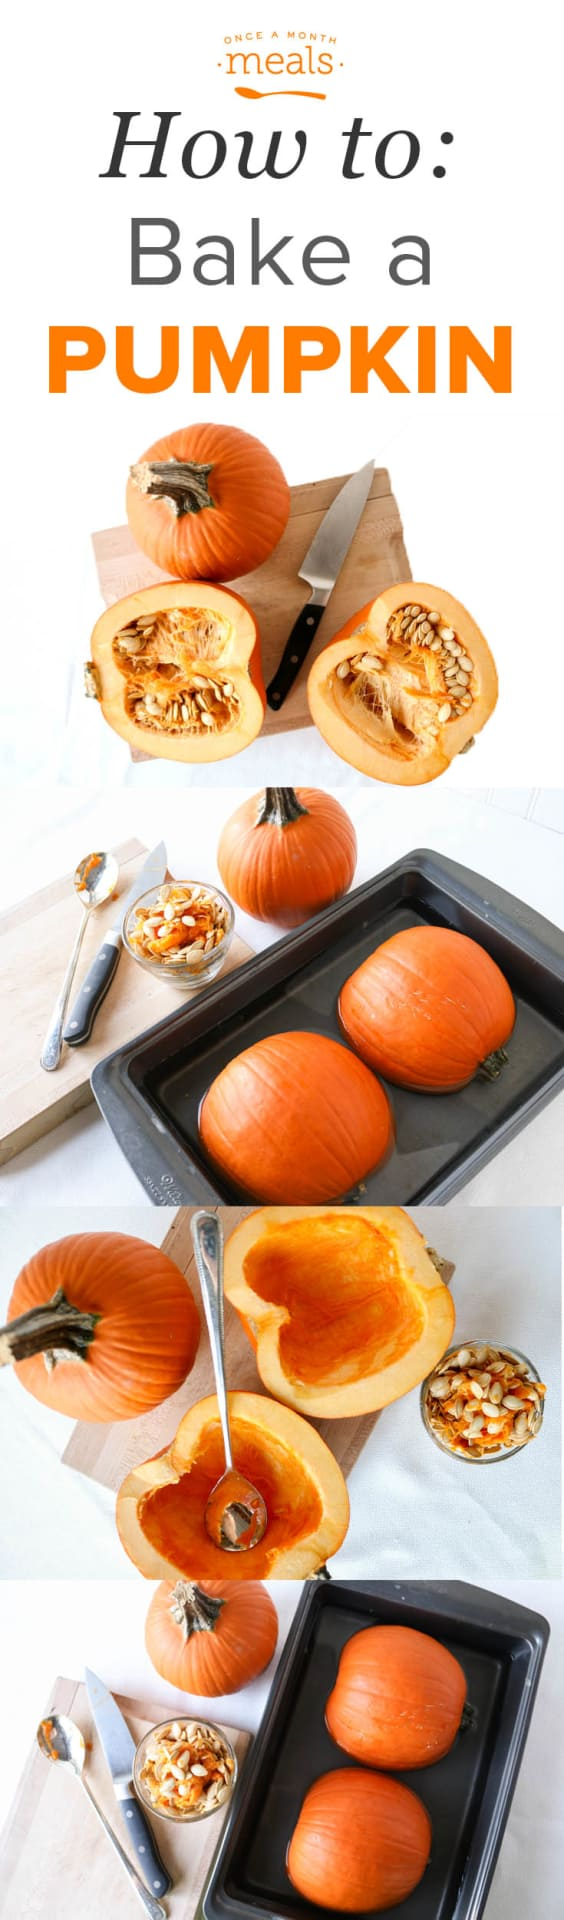 Well, it is fall and what says fall like pumpkins? Let us teach you how to bake a pumpkin yourself and how to use it in recipes. Even babies love it!